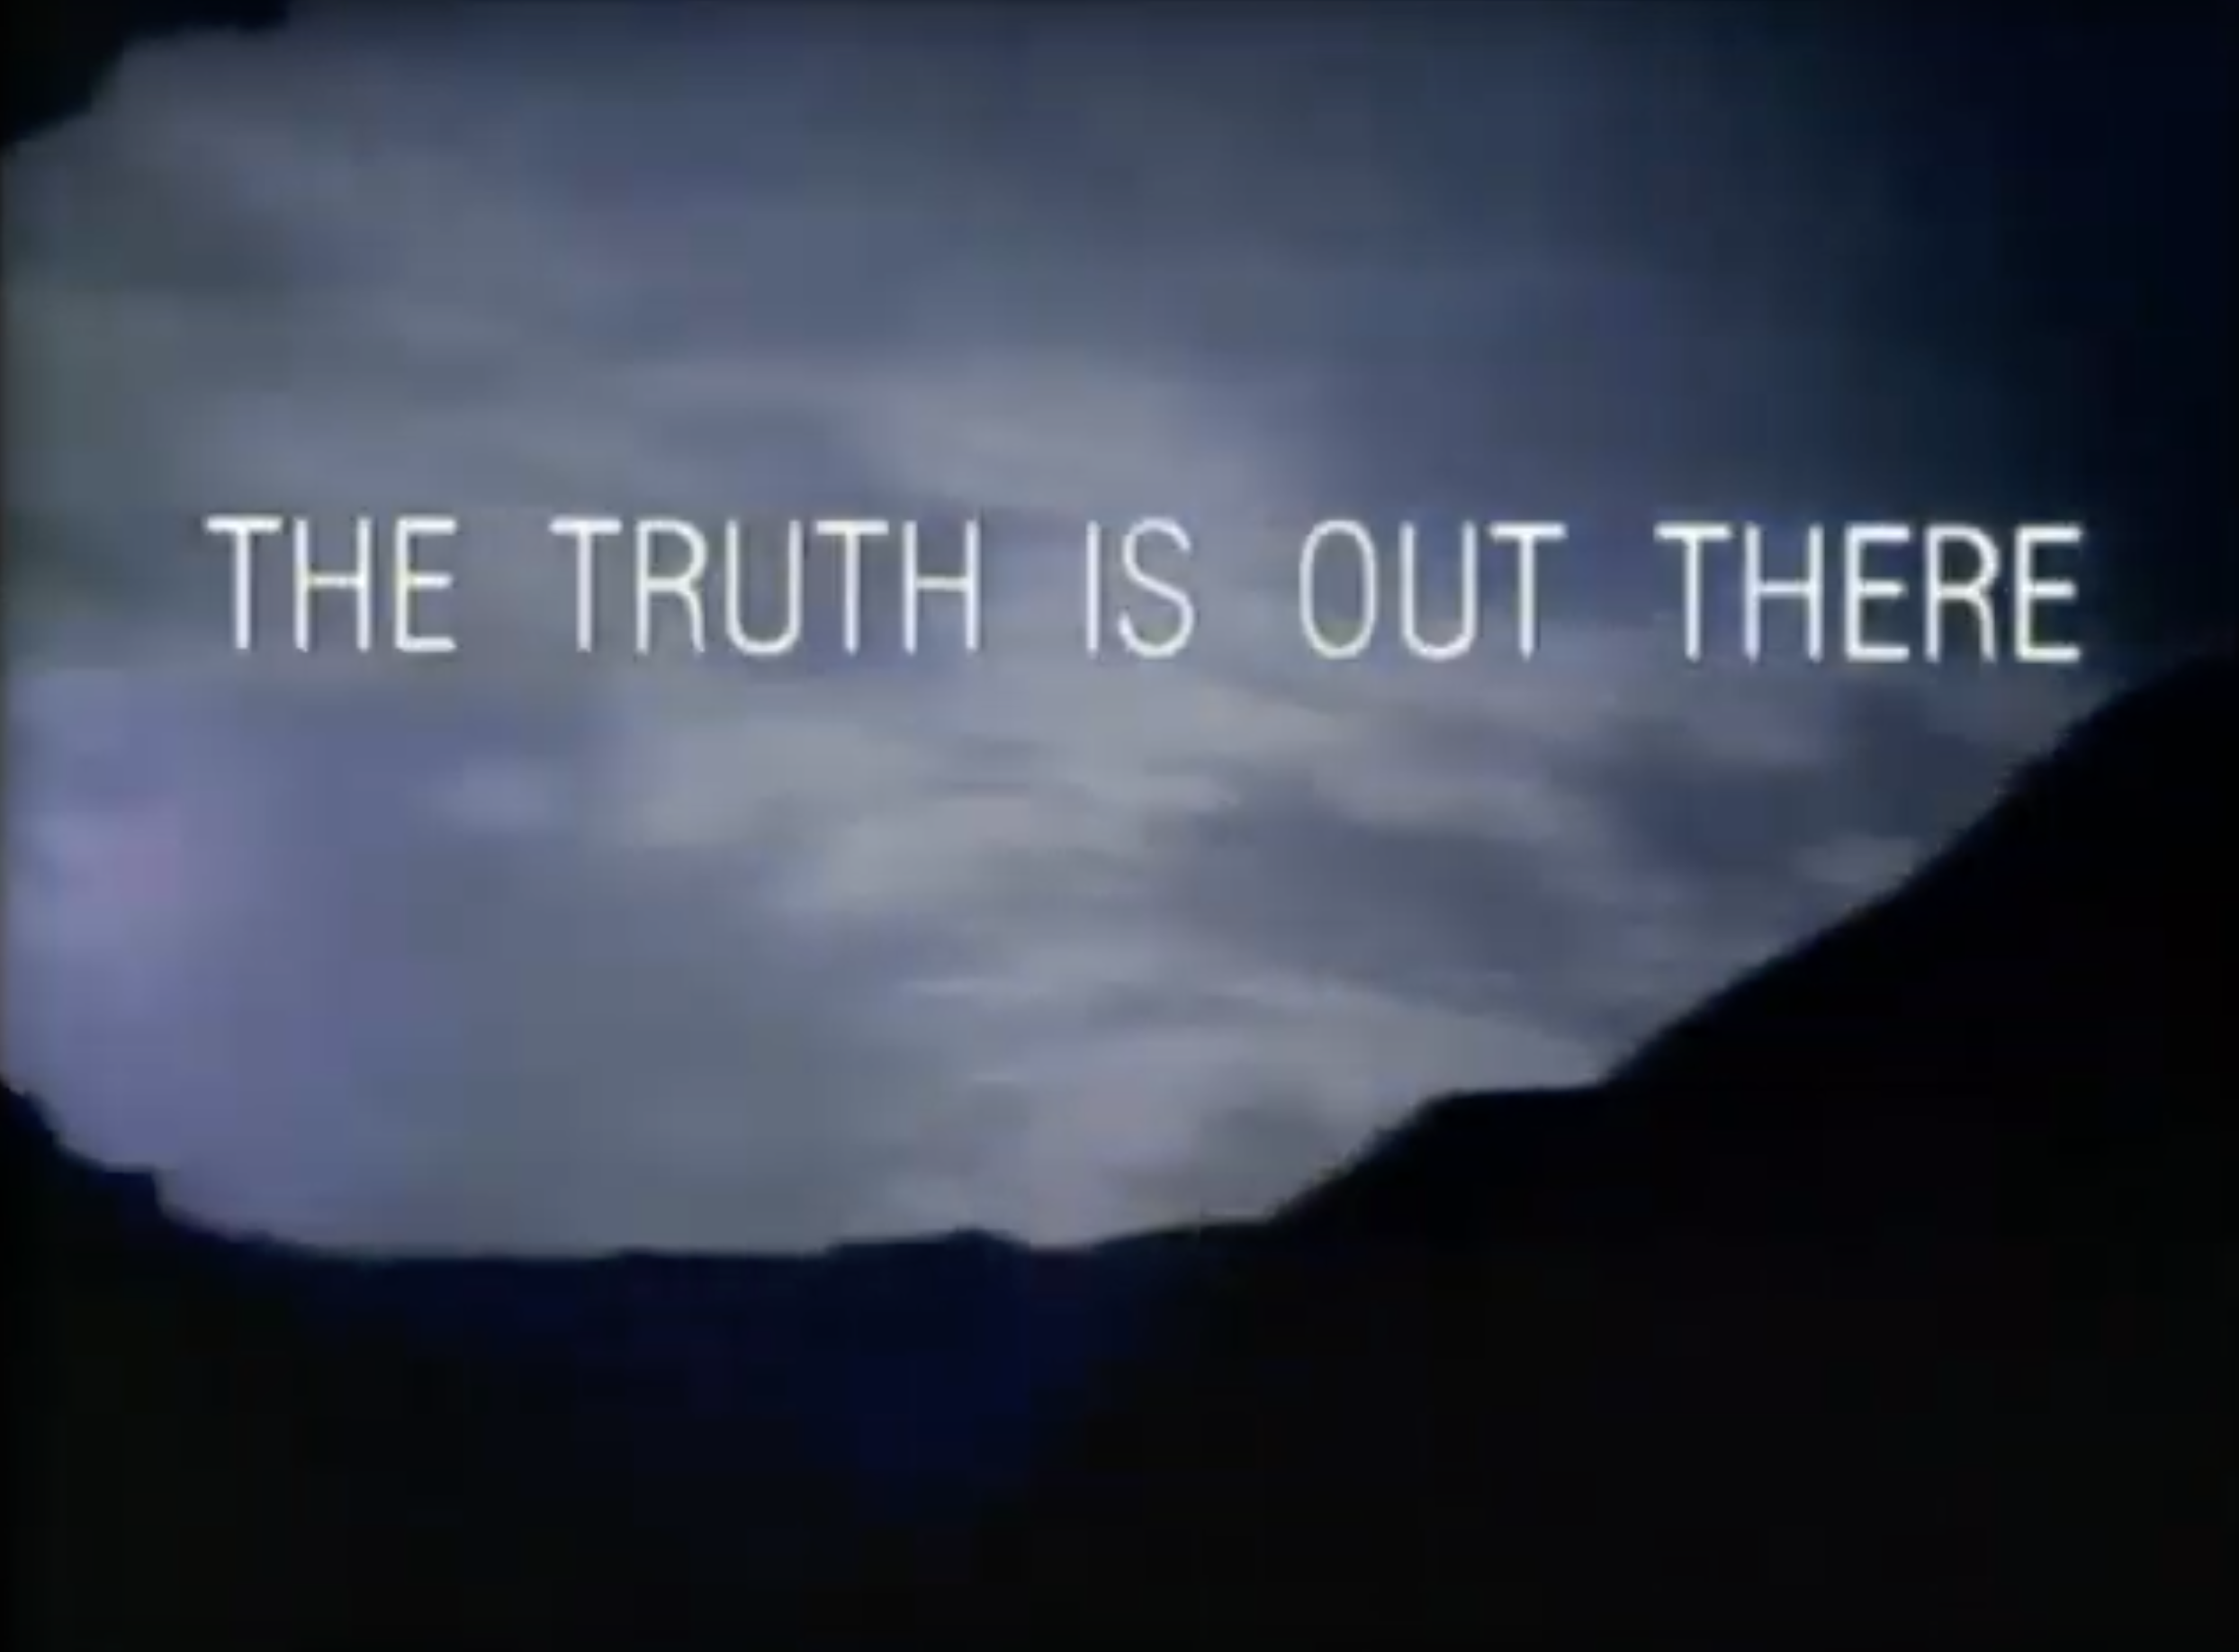 The Times Great TV Shows Switched Up Their Opening Credits